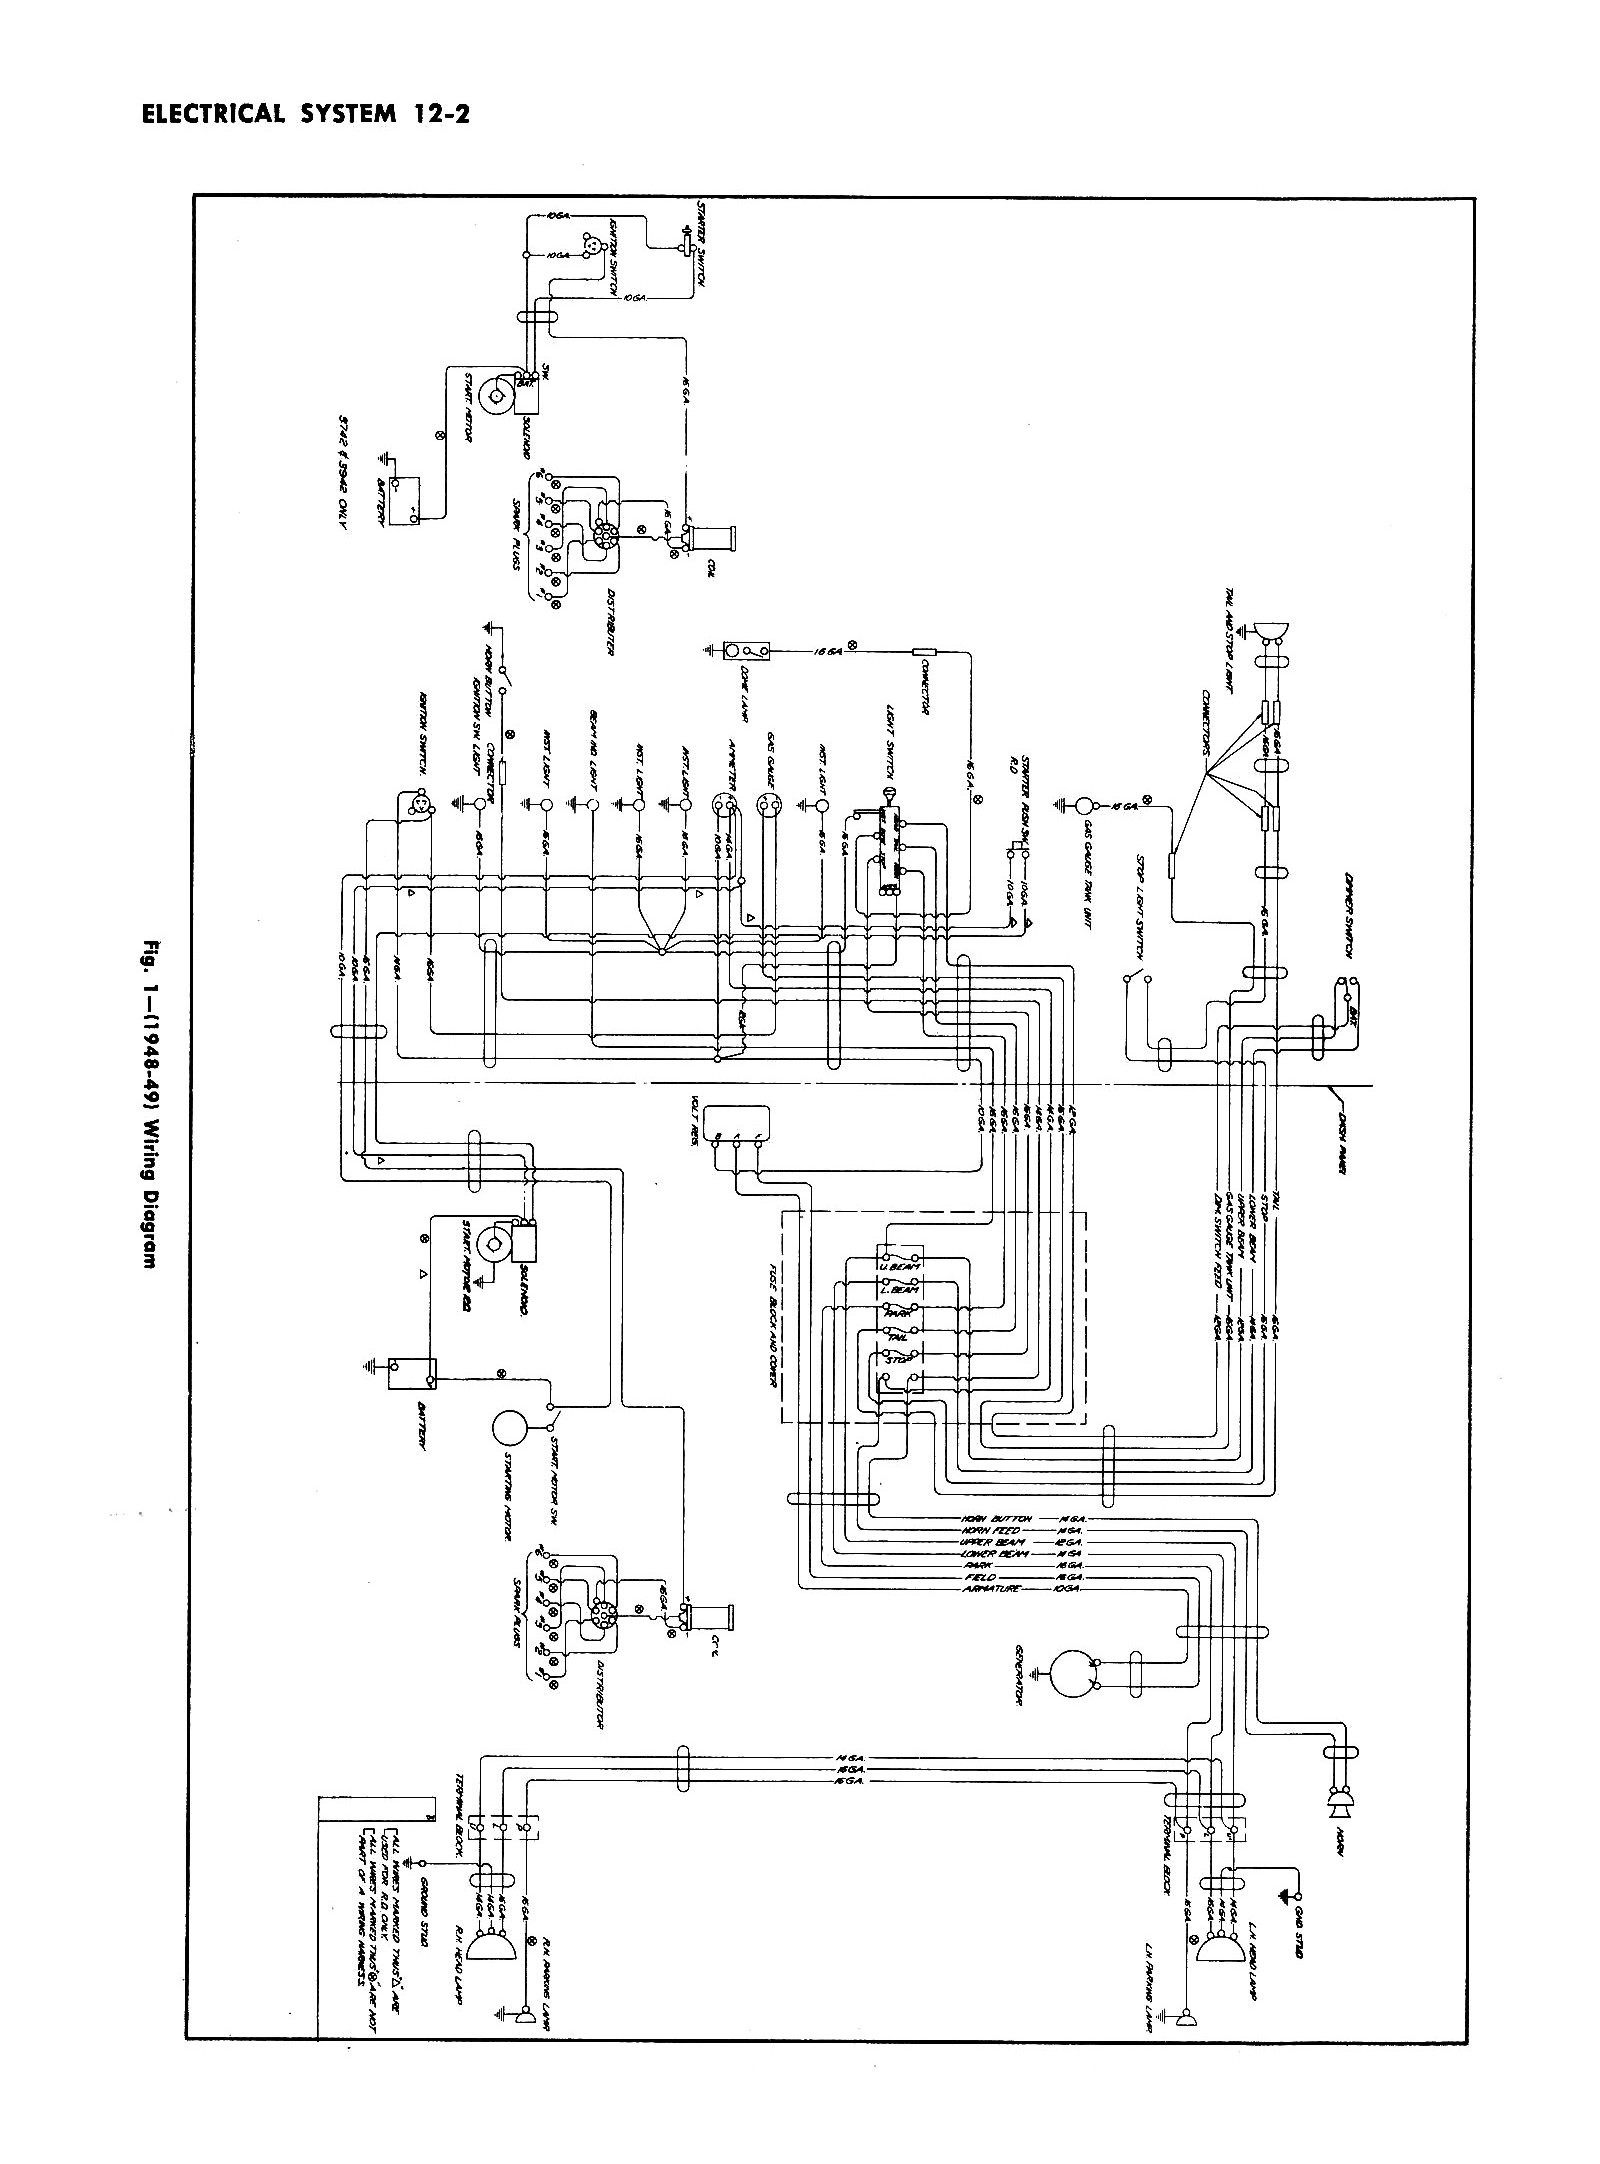 1948 Cadillac Wiring Diagram Guide And Troubleshooting Of Schematics For 1994 C K Chevy Third Level Rh 18 10 15 Jacobwinterstein Com Deville Cadilac